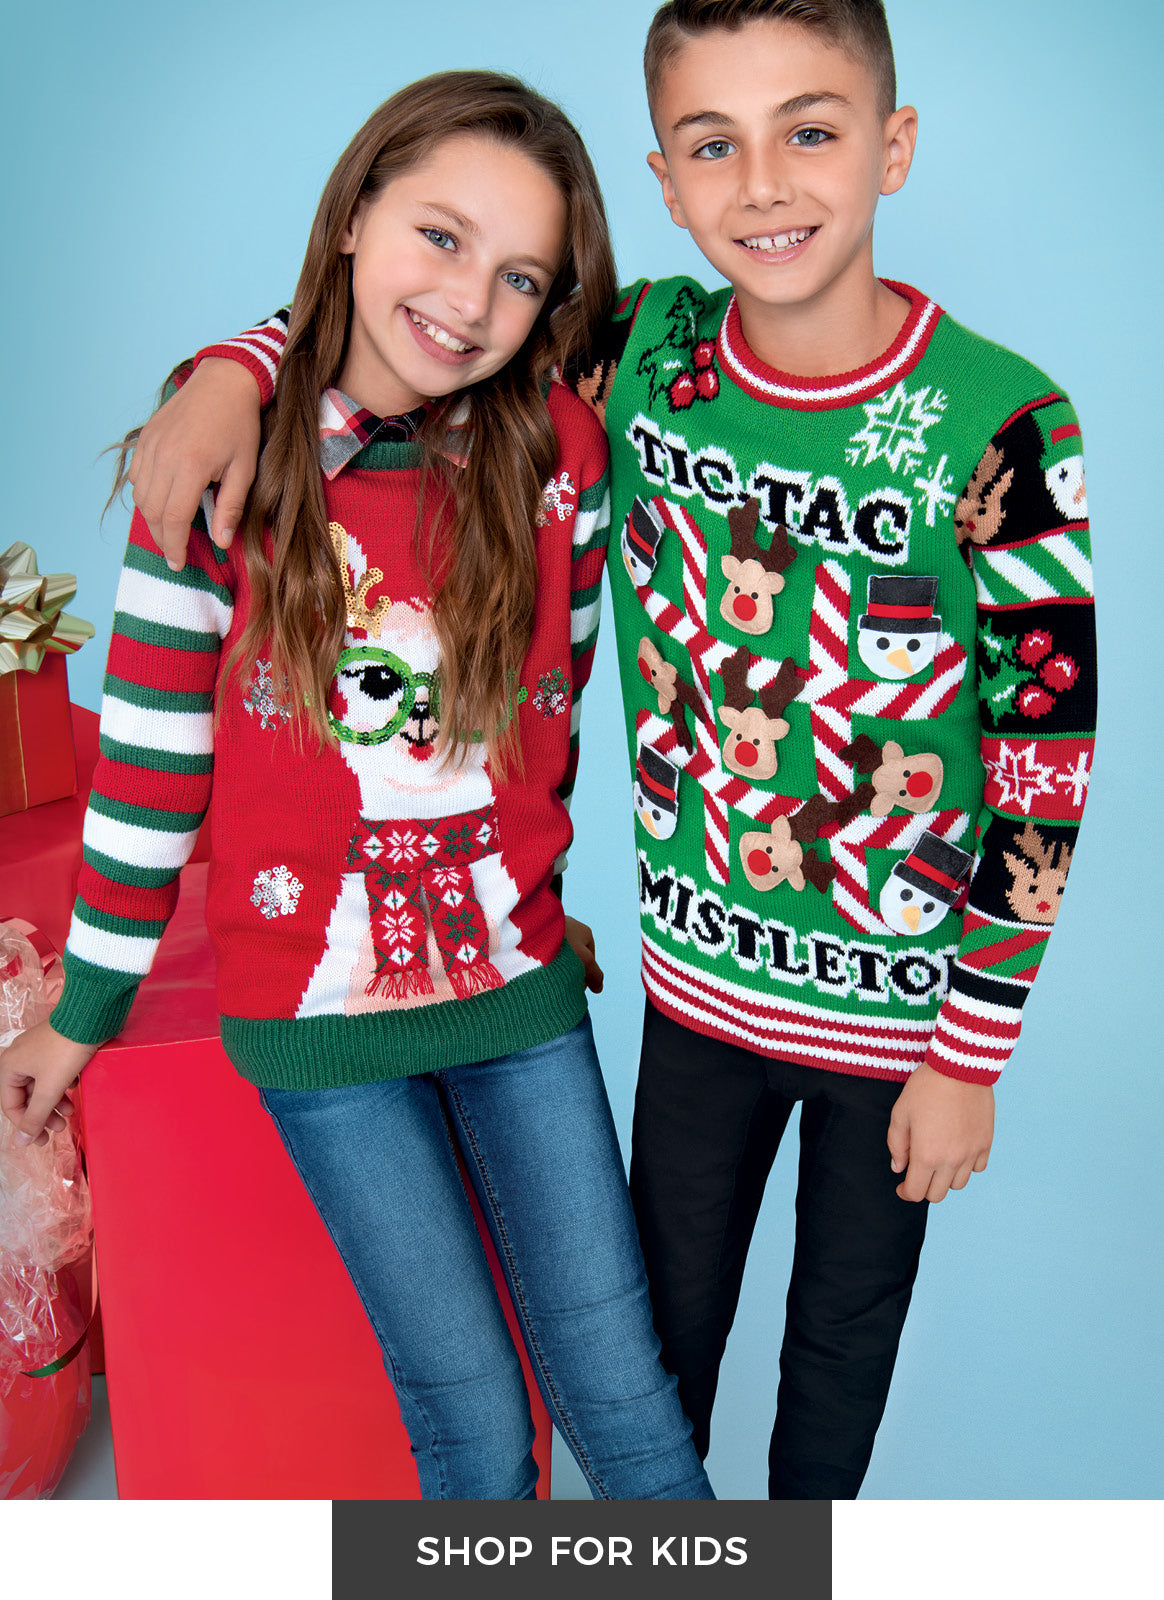 Urban Planet - The Holiday Shop - Shop For Kids